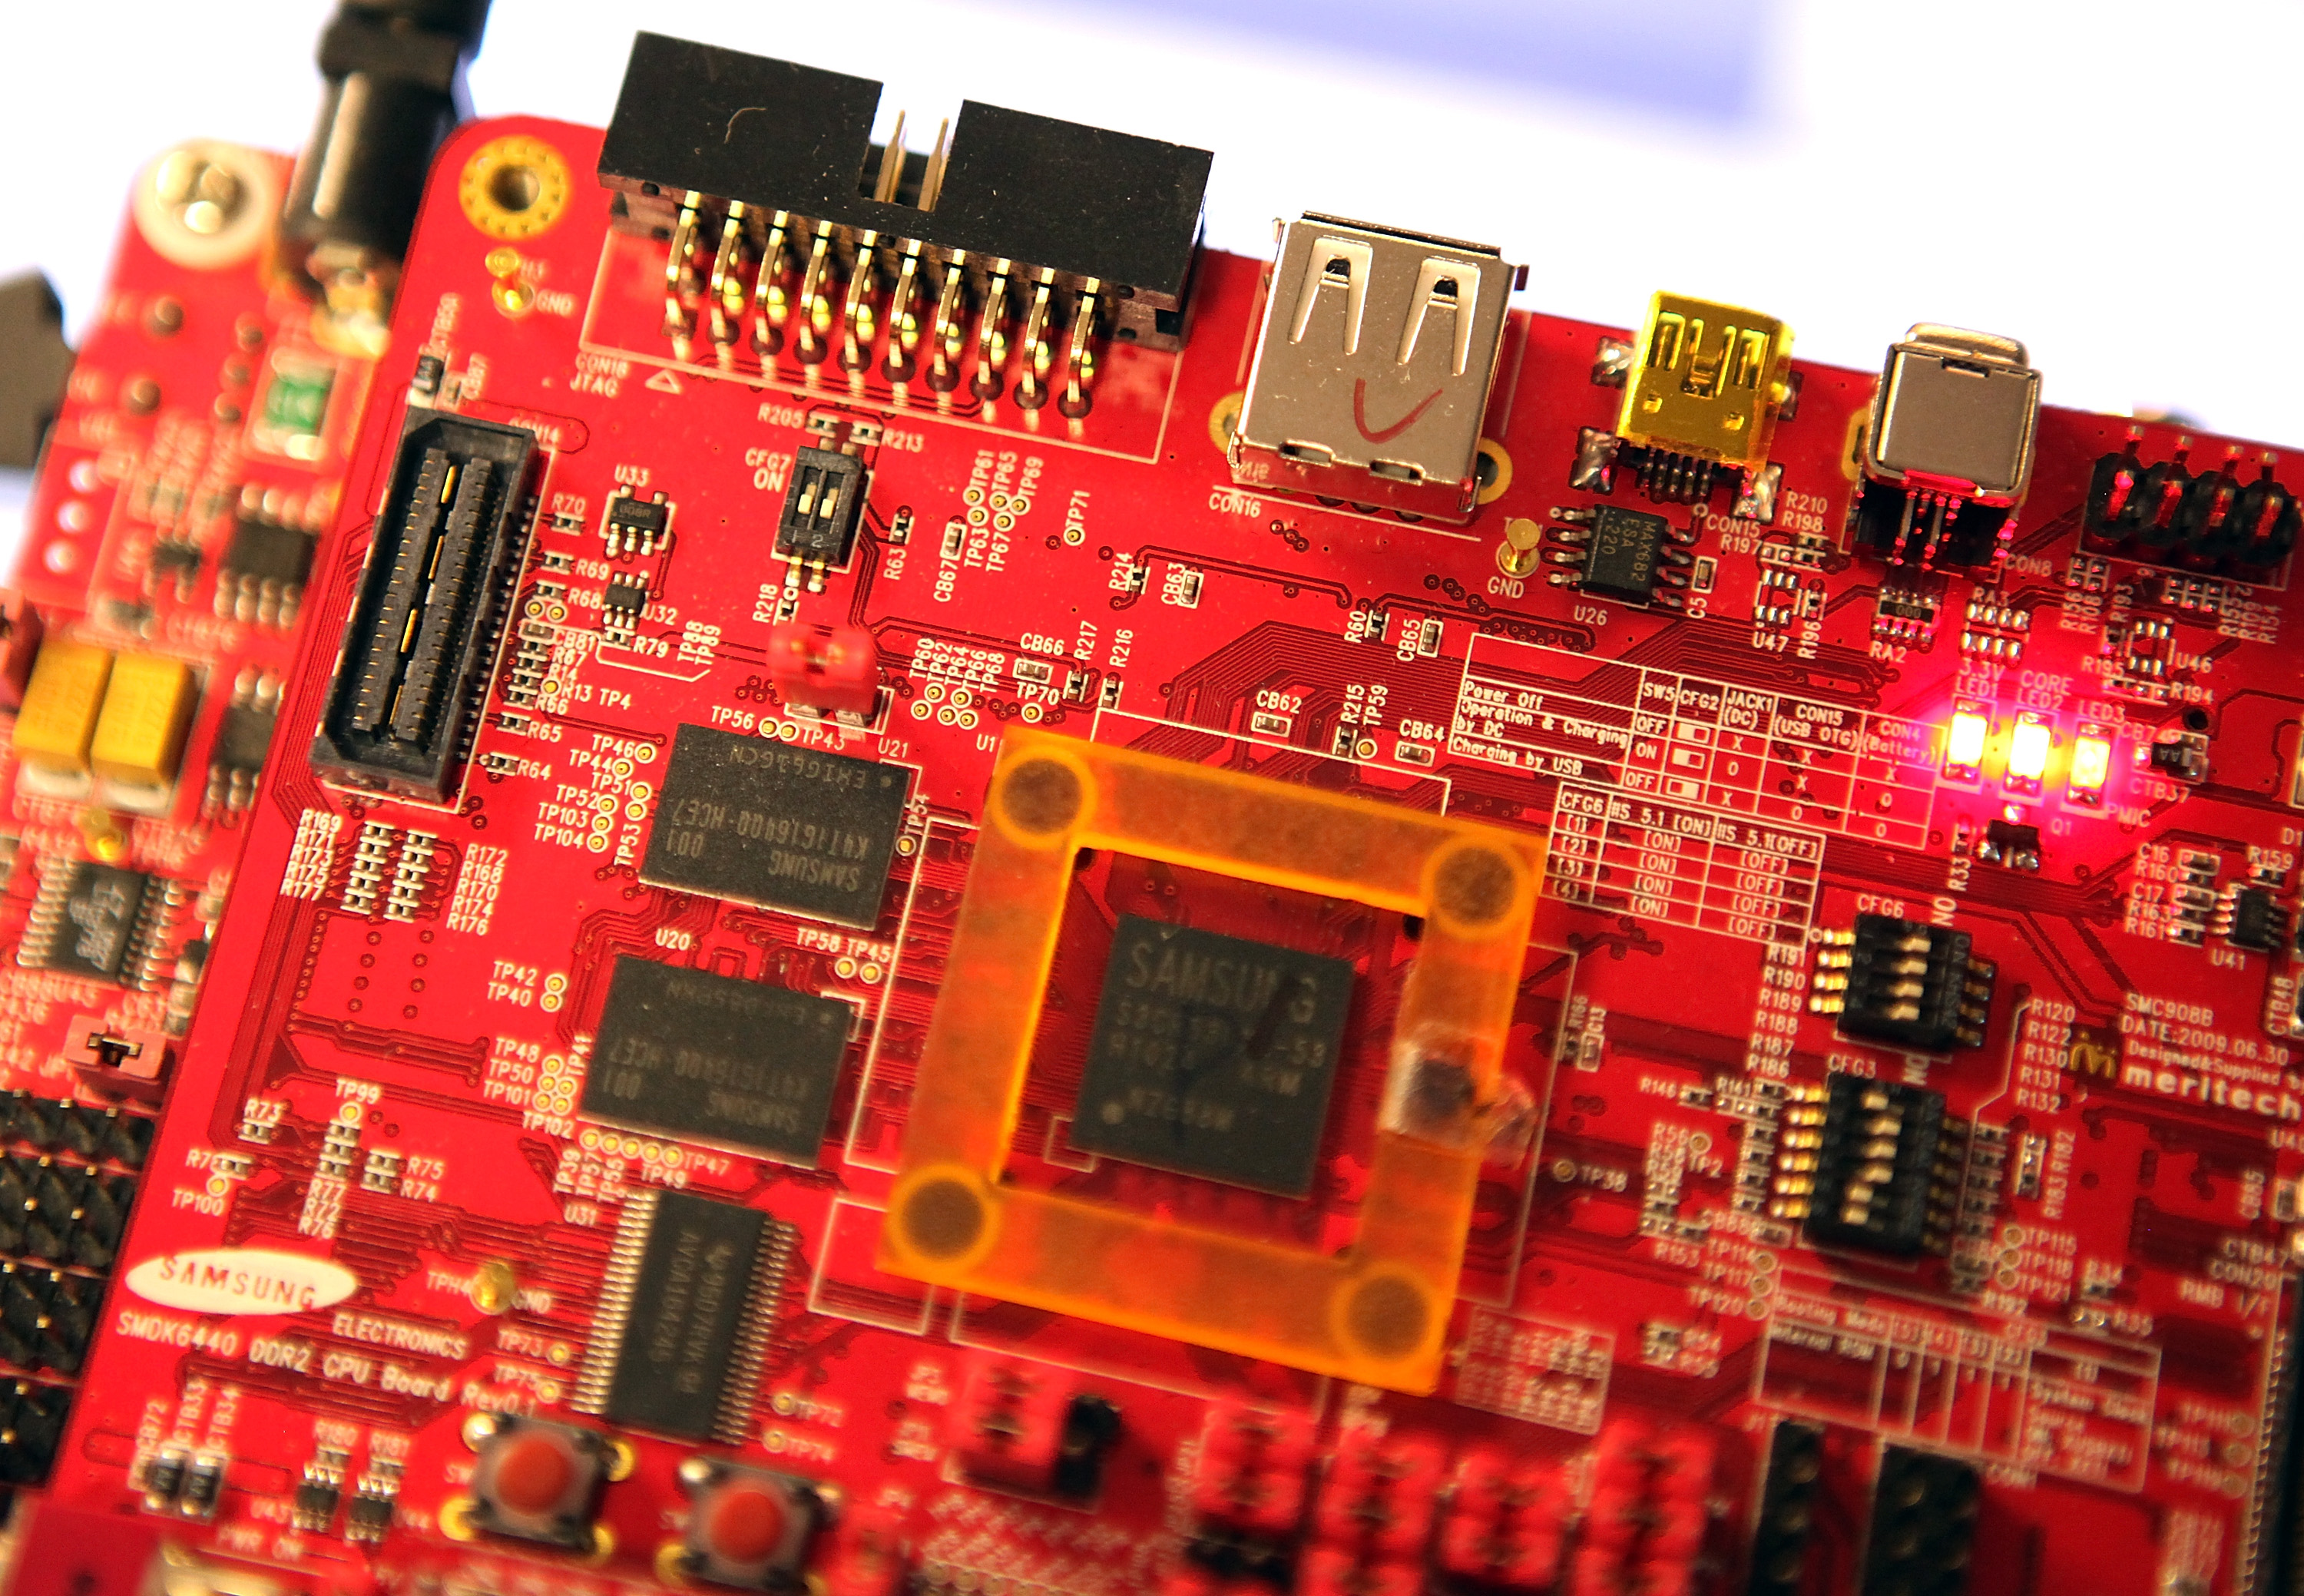 Semiconductors are seen on a circuit board that powers a Samsung tablet at the Samsung MOBILE-ization media and analyst event in San Jose, California on March 23, 2011. (Photo by Justin Sullivan/Getty Images)